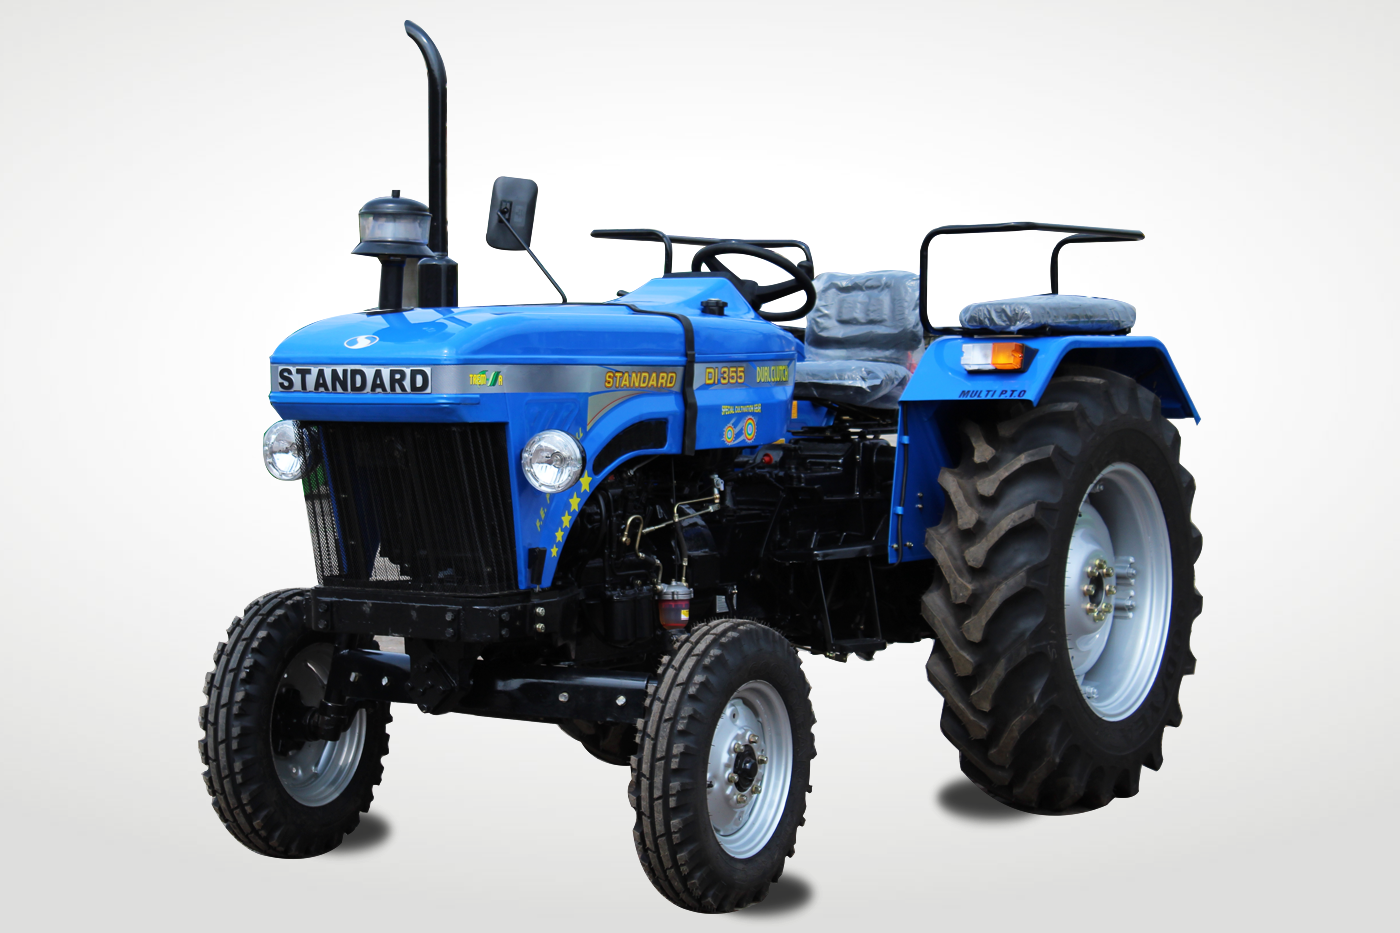 Standard DI 355 Tractor Price Specifications